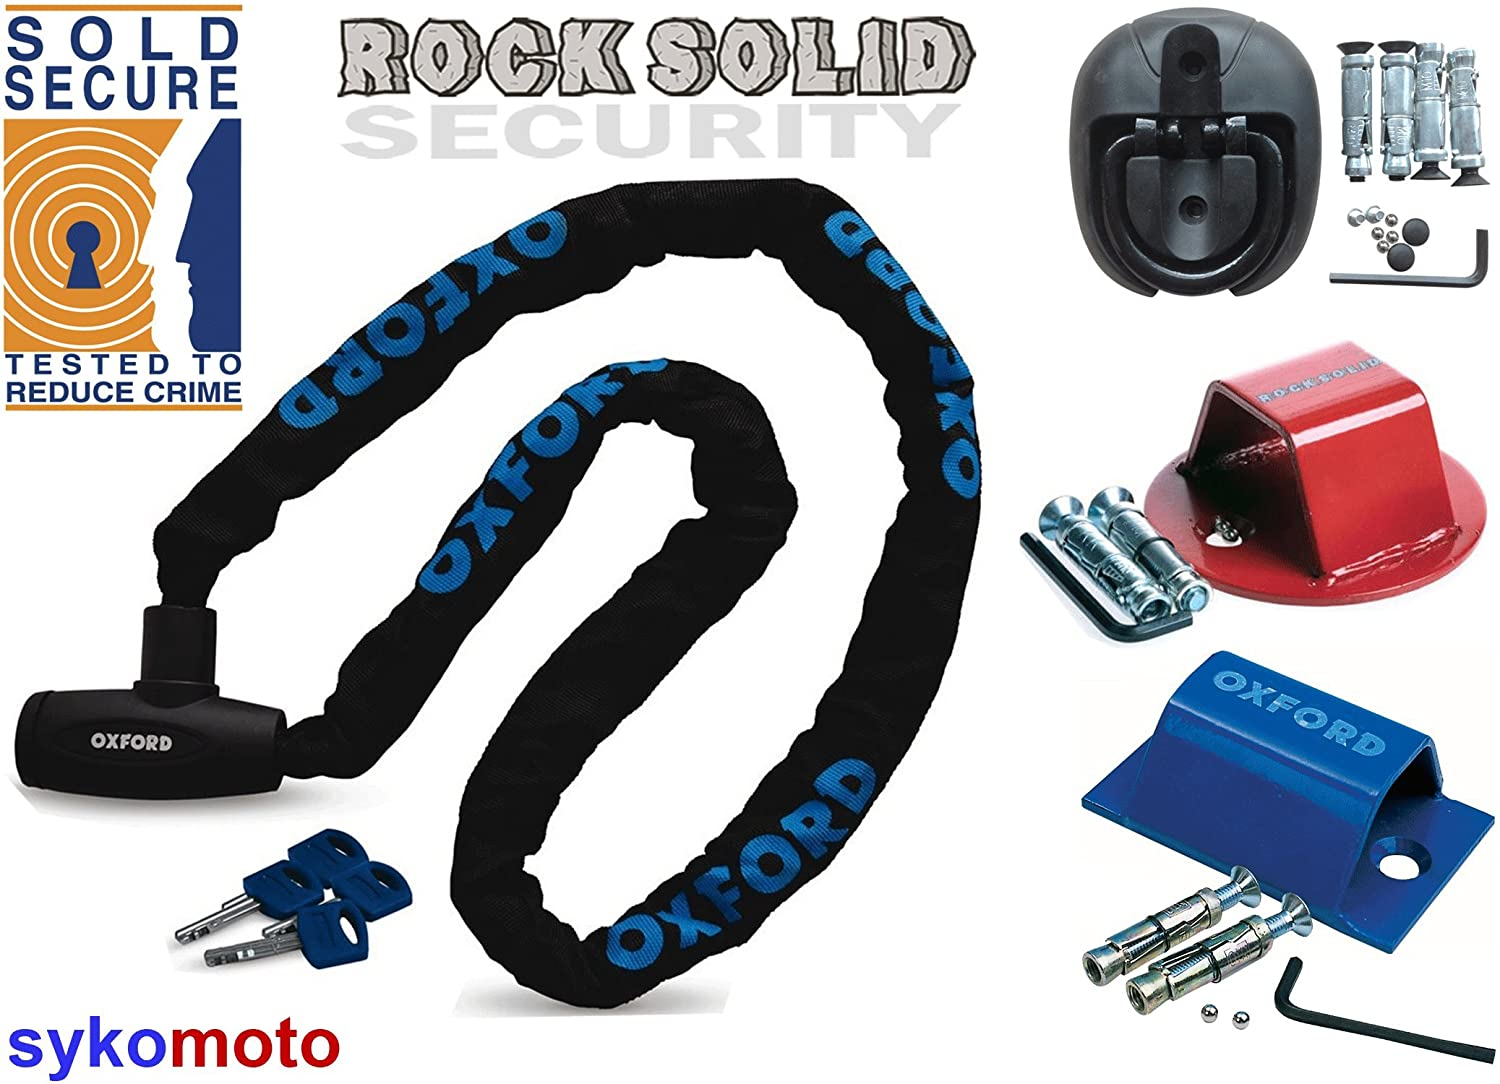 Brute Force Oxford GP Chain Lock 150 CM Long With Ground Wall Anchor Multiple Options Rocksolid Atom Anchor